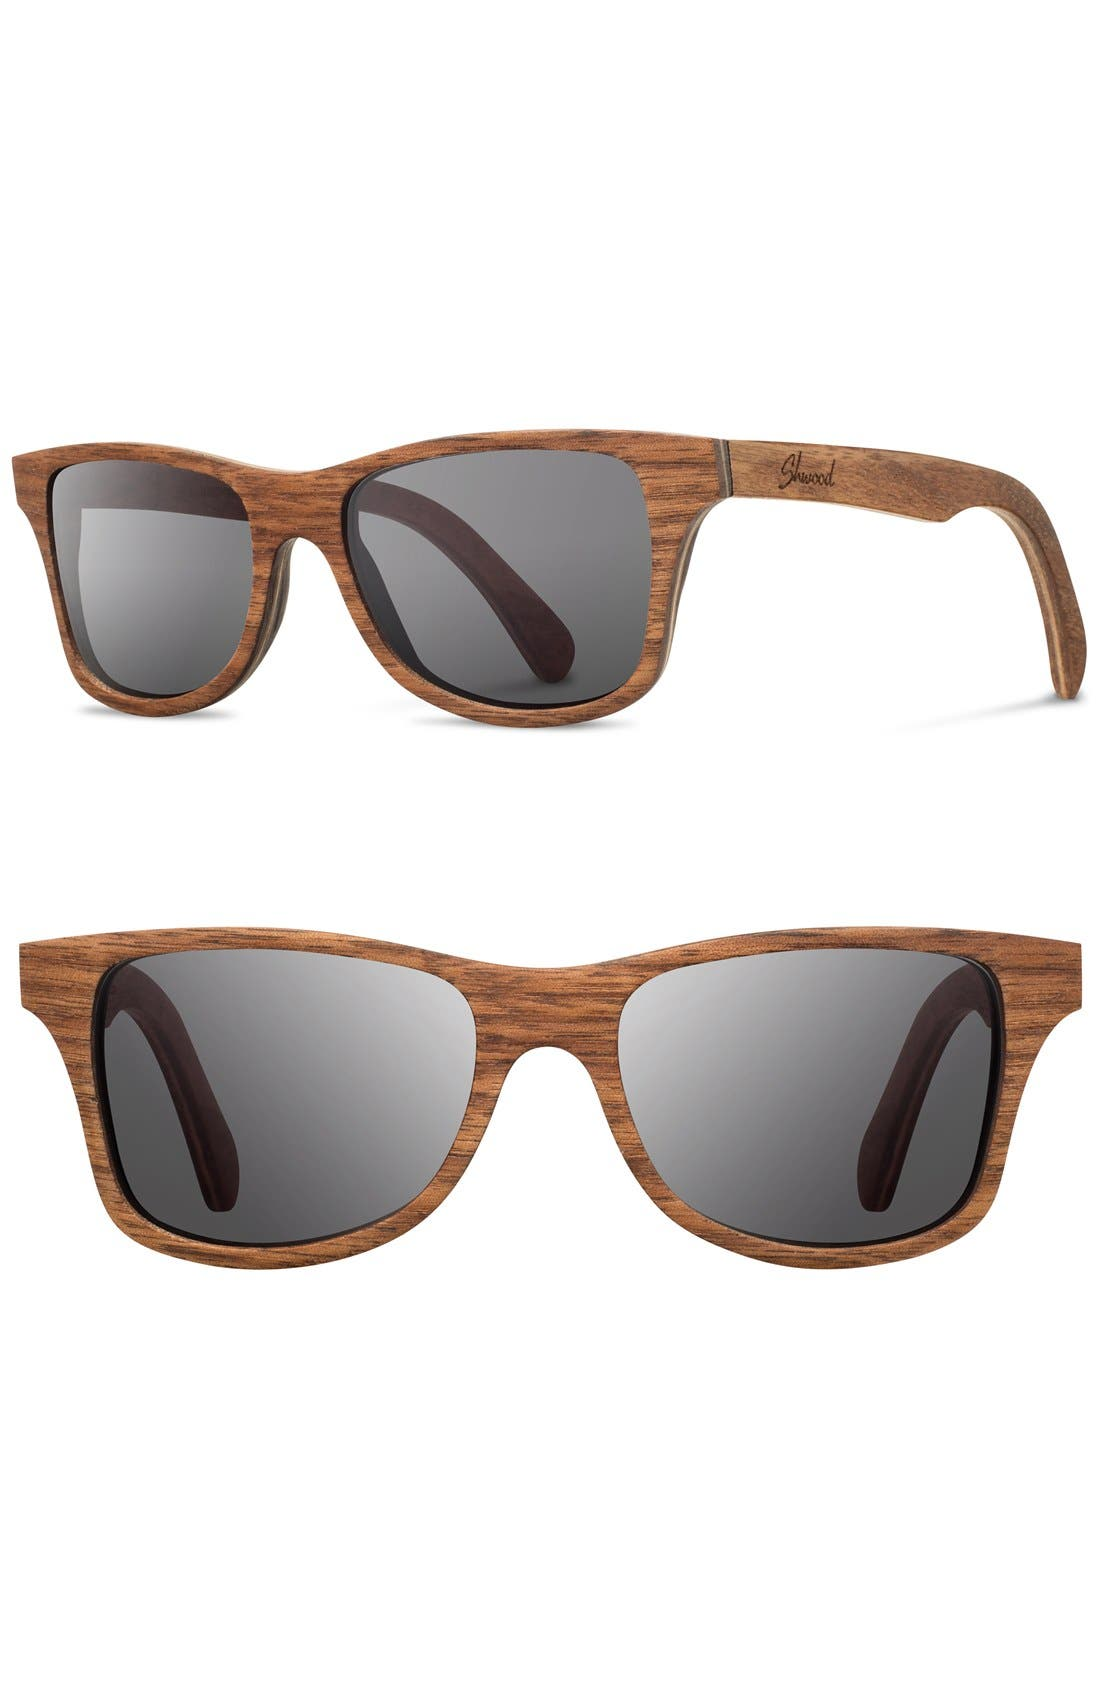 Alternate Image 1 Selected - Shwood 'Canby' 54mm Wood Sunglasses